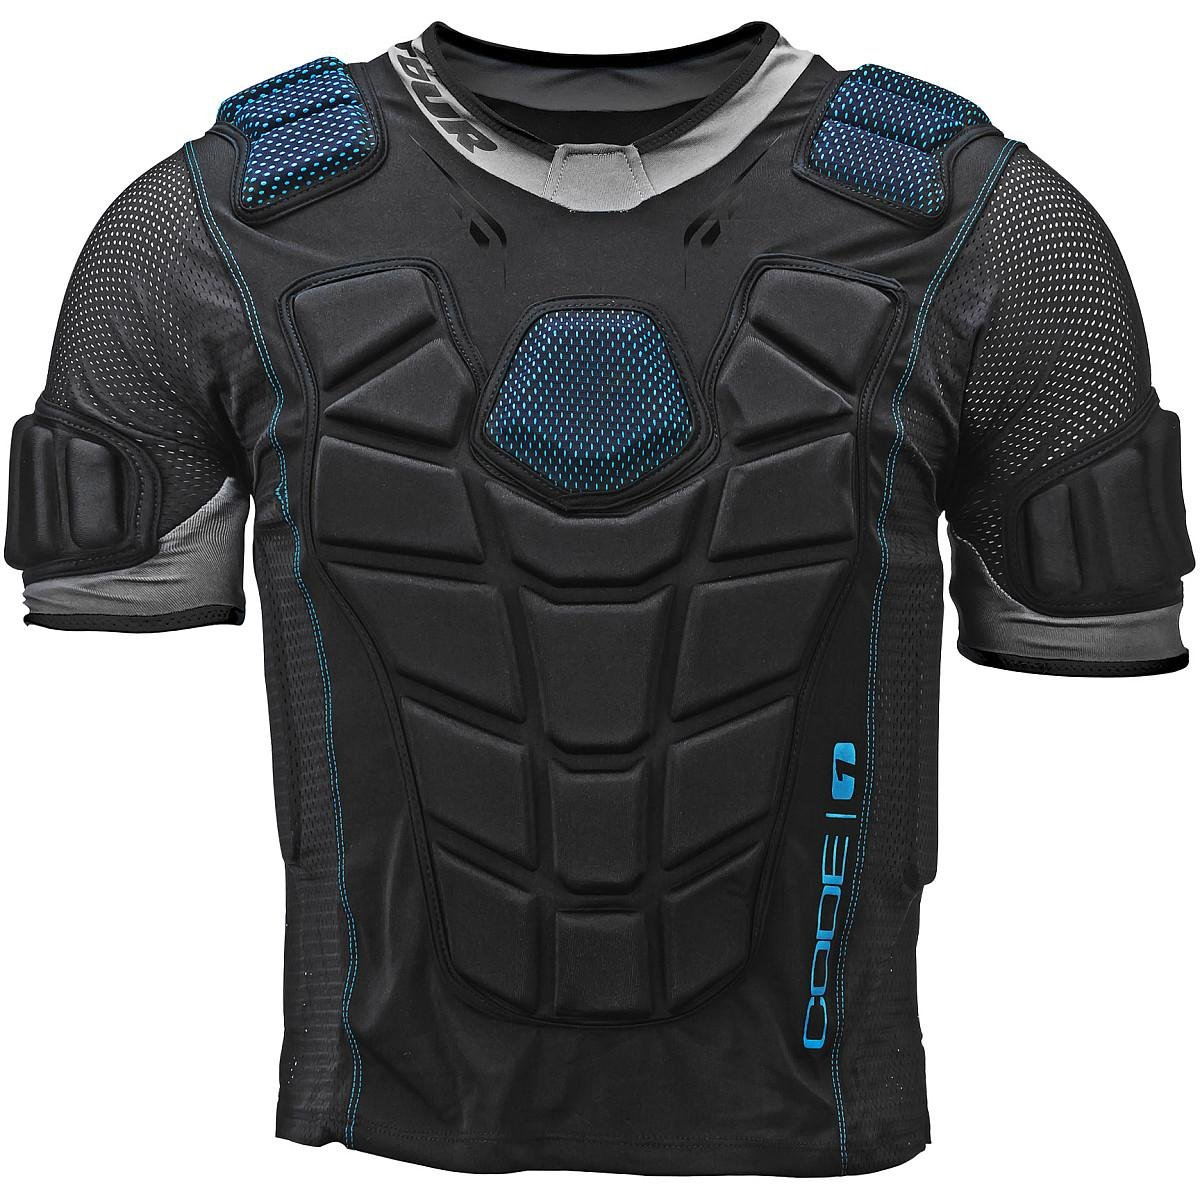 Tour Adult Code 1 Inline Hockey Upper Body Protector Black Size: Large Black